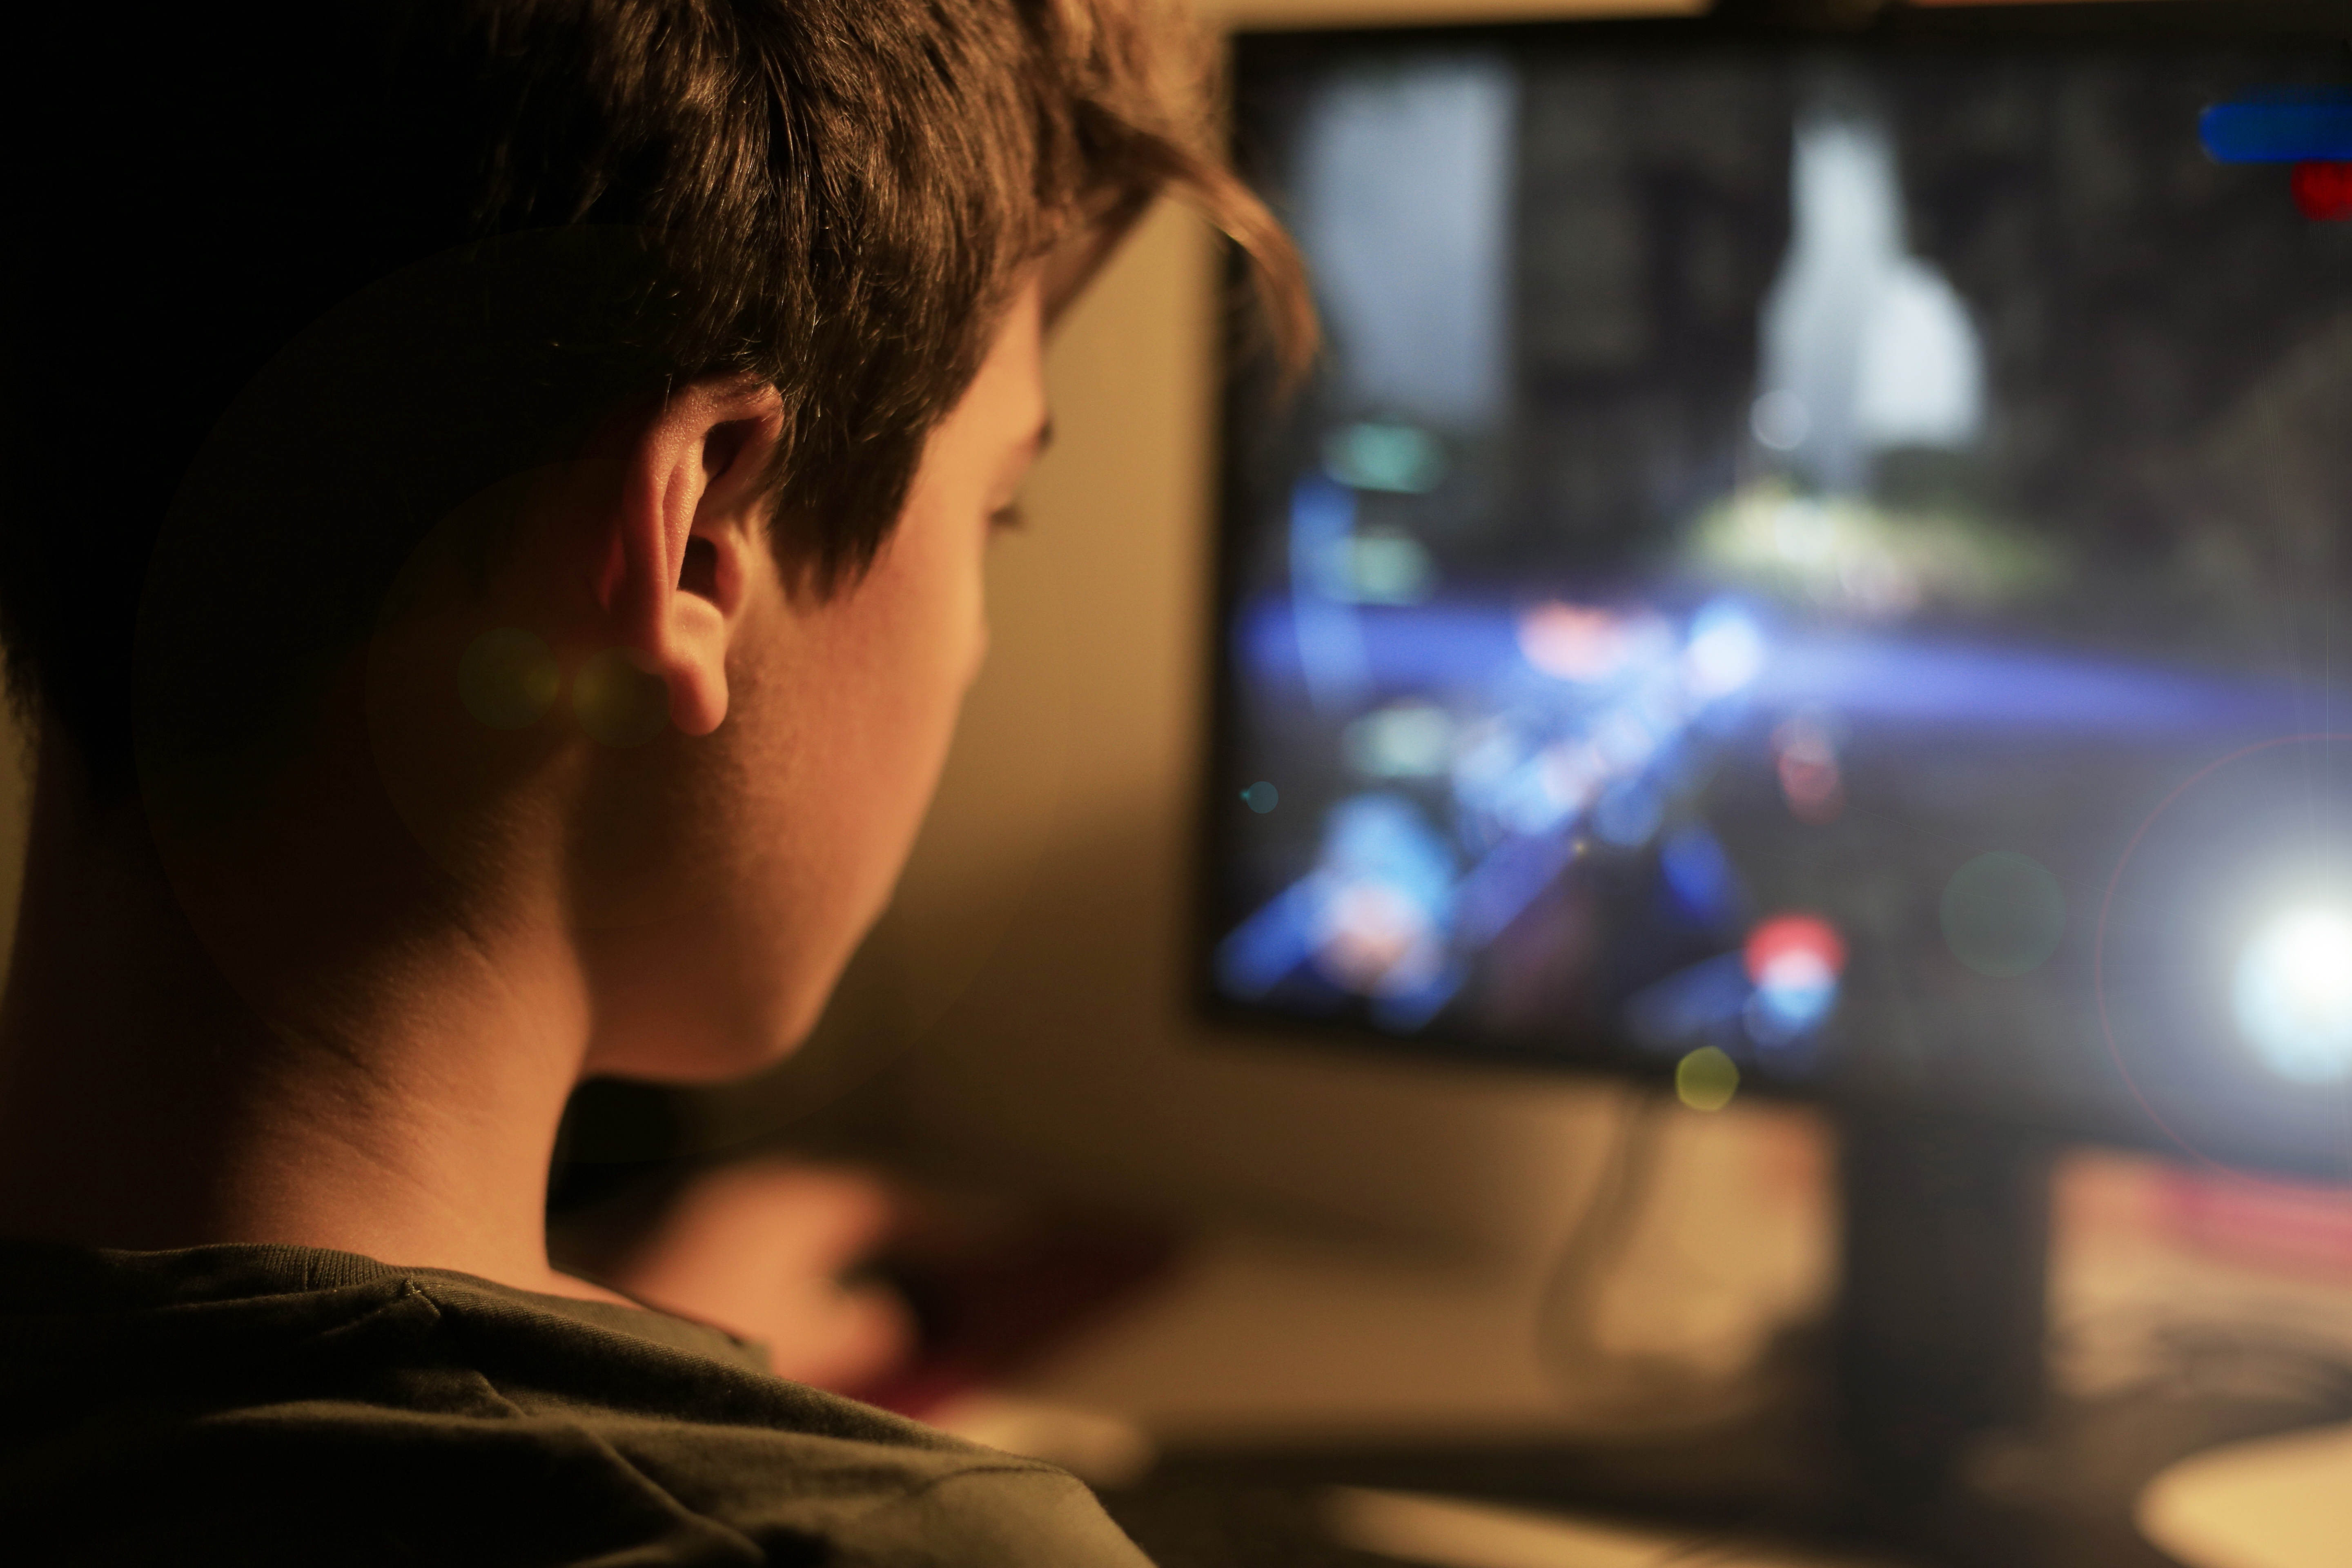 iStock image: In-game purchasing systems are blurring the boundaries with gambling